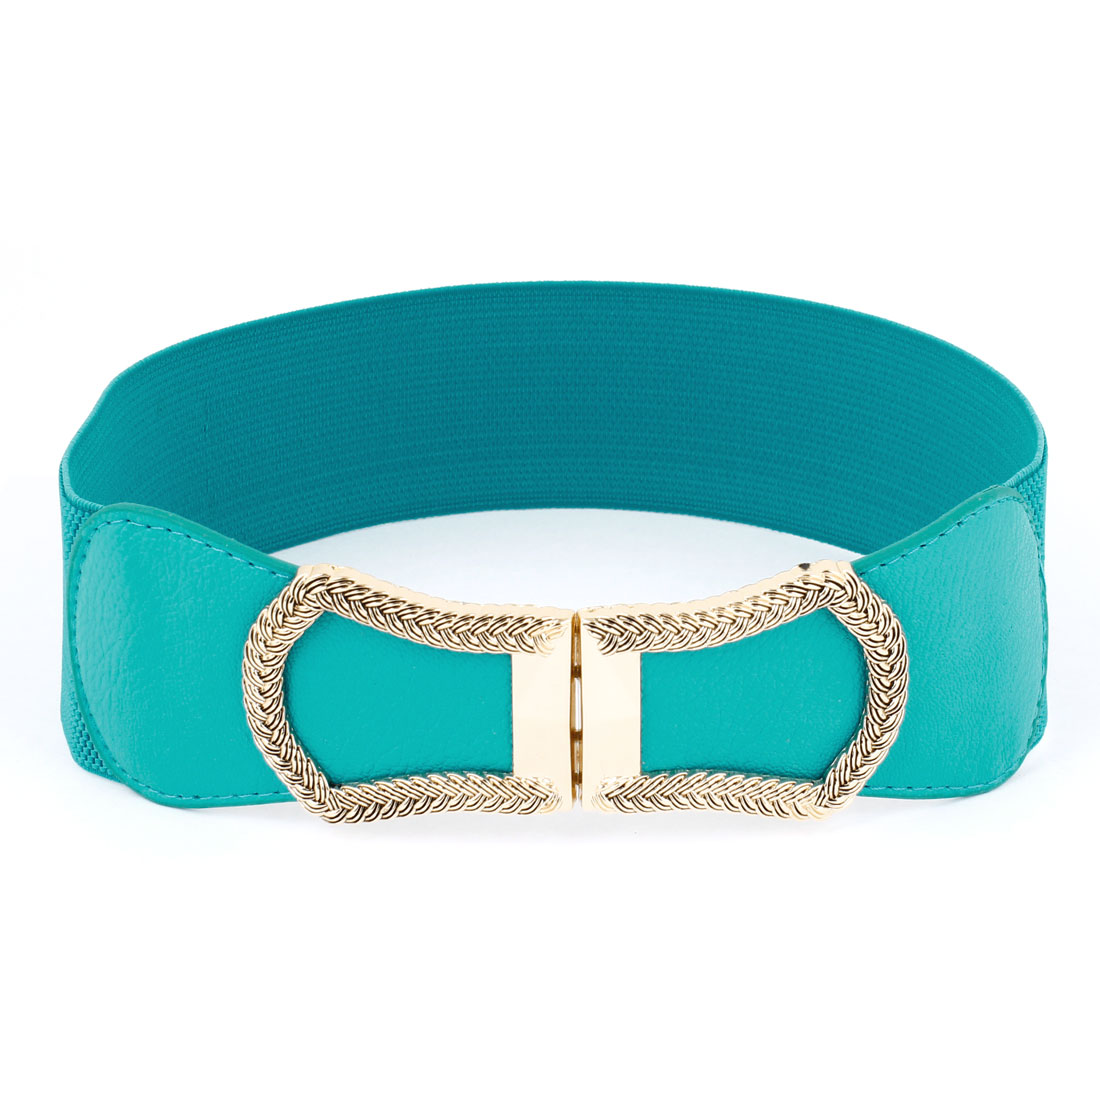 Woman Lady Metal Knitted Interlocking Buckle Stretchy Cinch Waist Belt Cyan